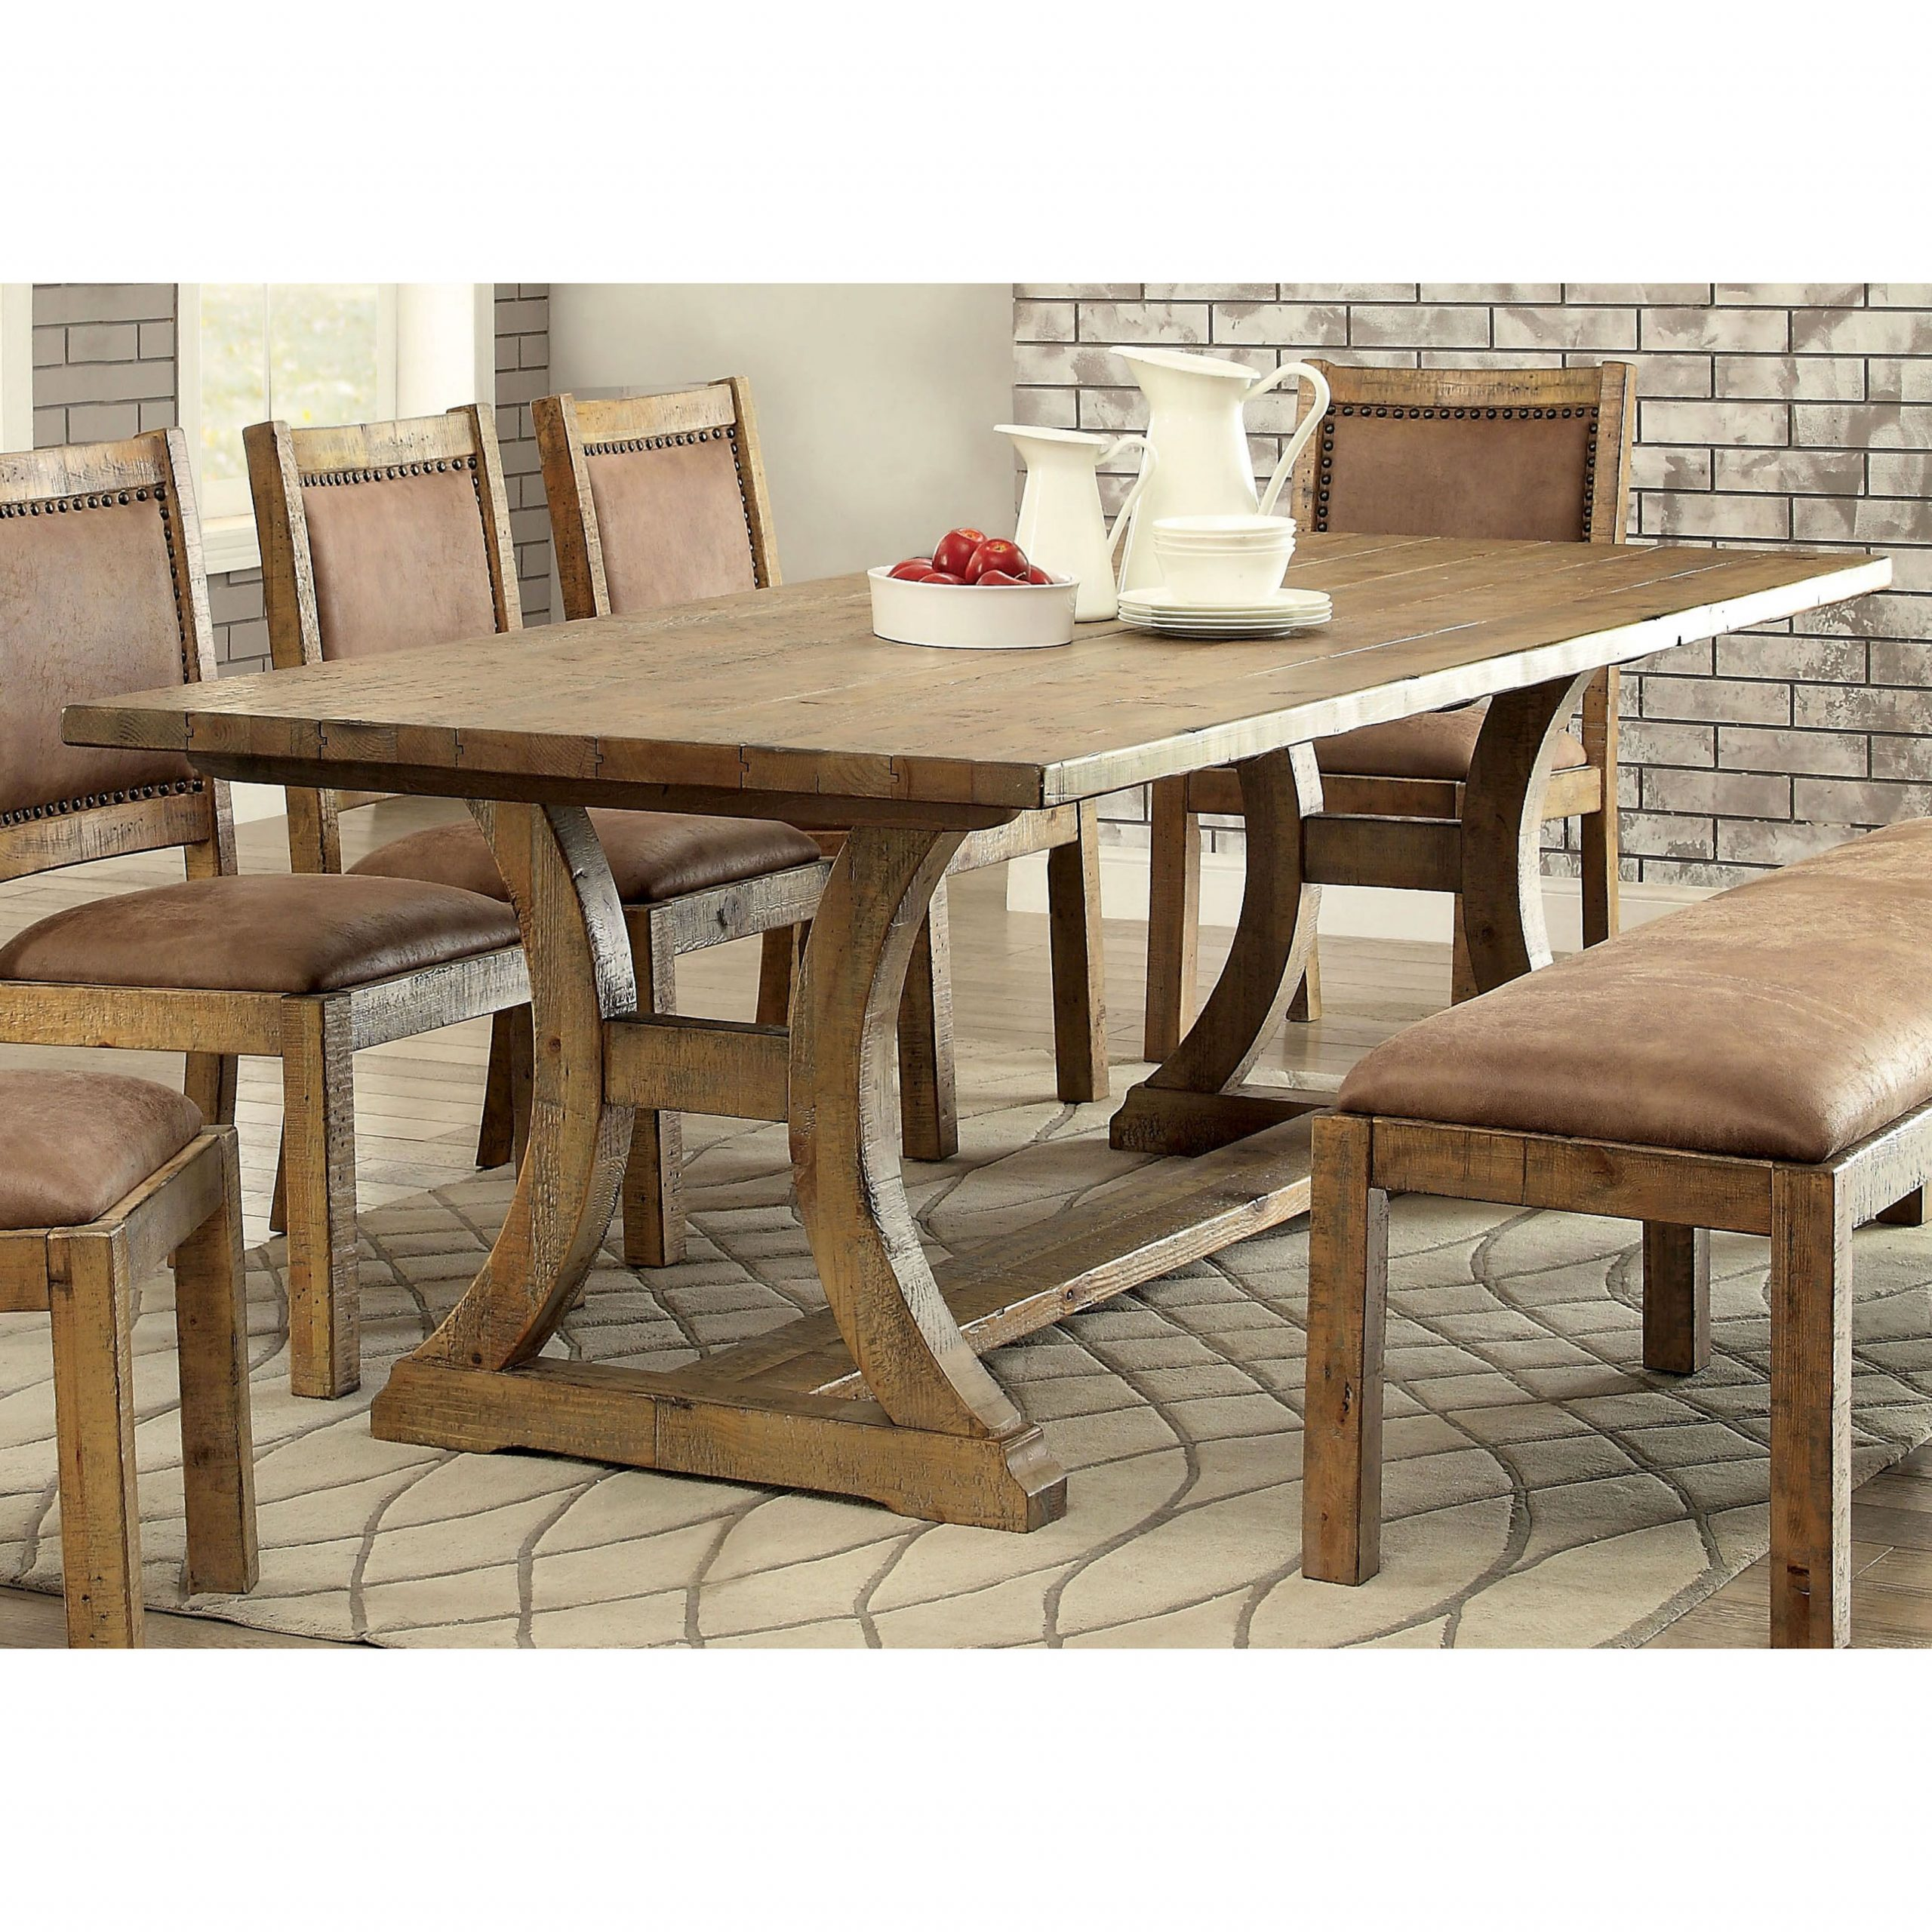 Most Recent Small Dining Tables With Rustic Pine Ash Brown Finish Intended For Furniture Of America Matthias Industrial Rustic Pine Dining (View 3 of 30)